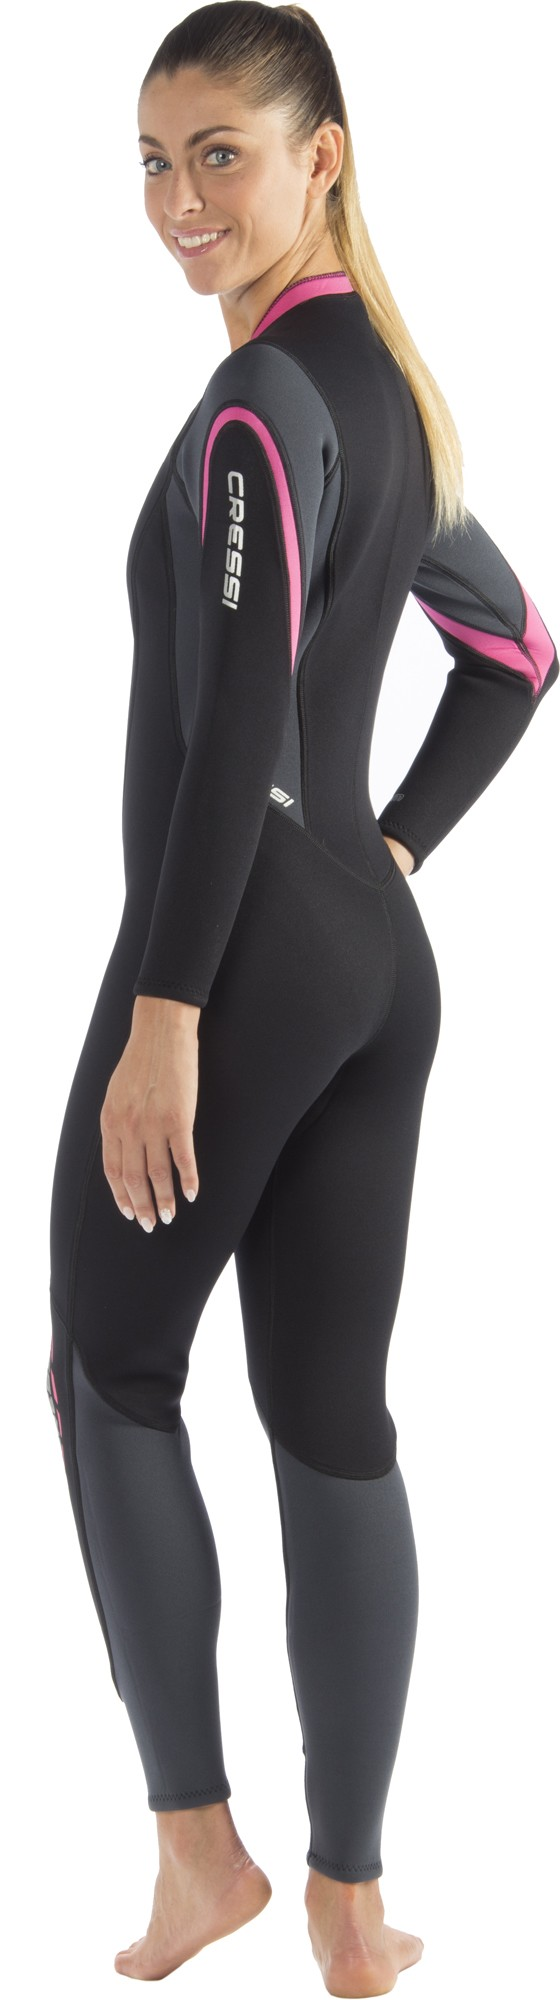 Cressi wetsuit Lei buying cheap by Dive Connection ce59b96f8